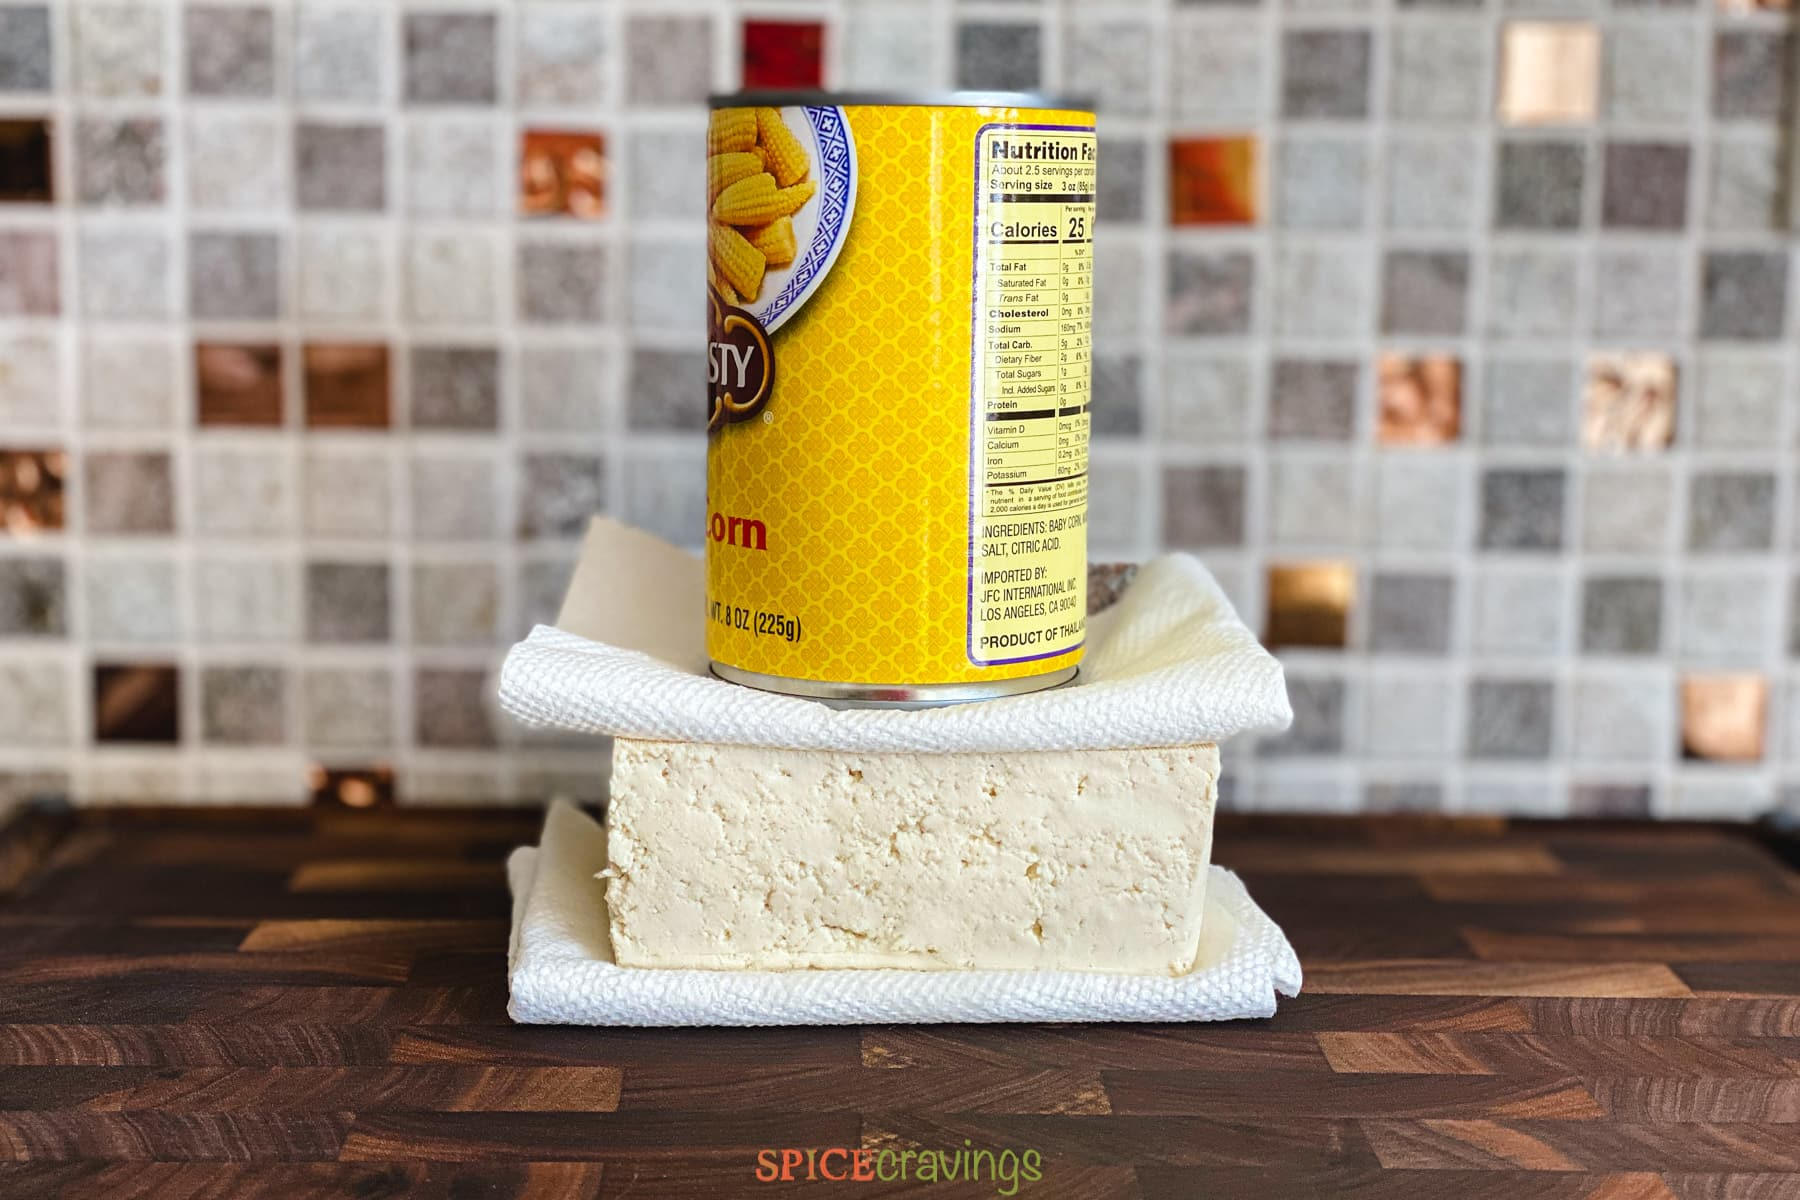 A block of tofu with paper towels underneath and on top, with a can pressing down on top